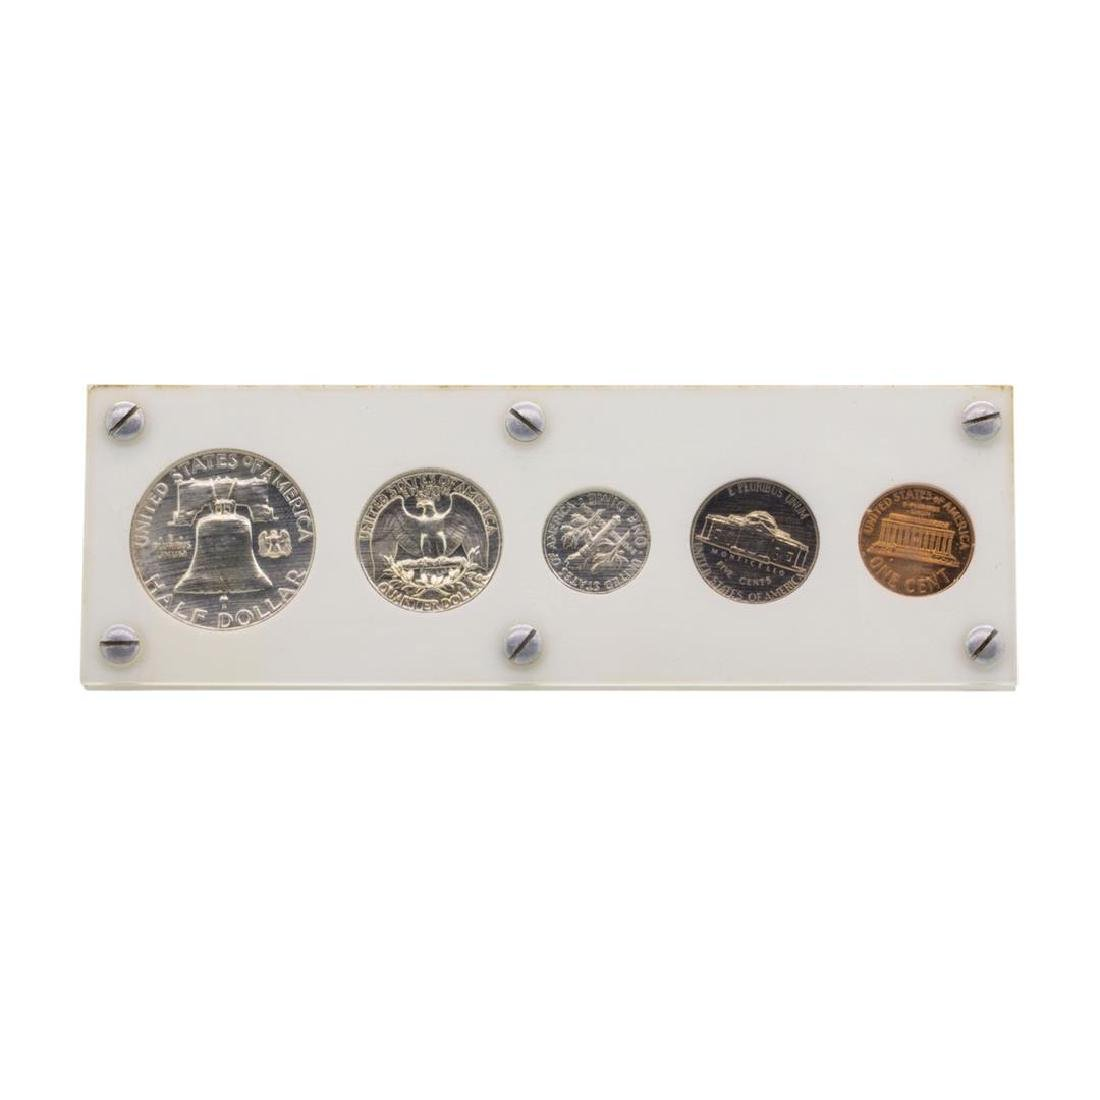 1960 (5) Coin Proof Set - 2